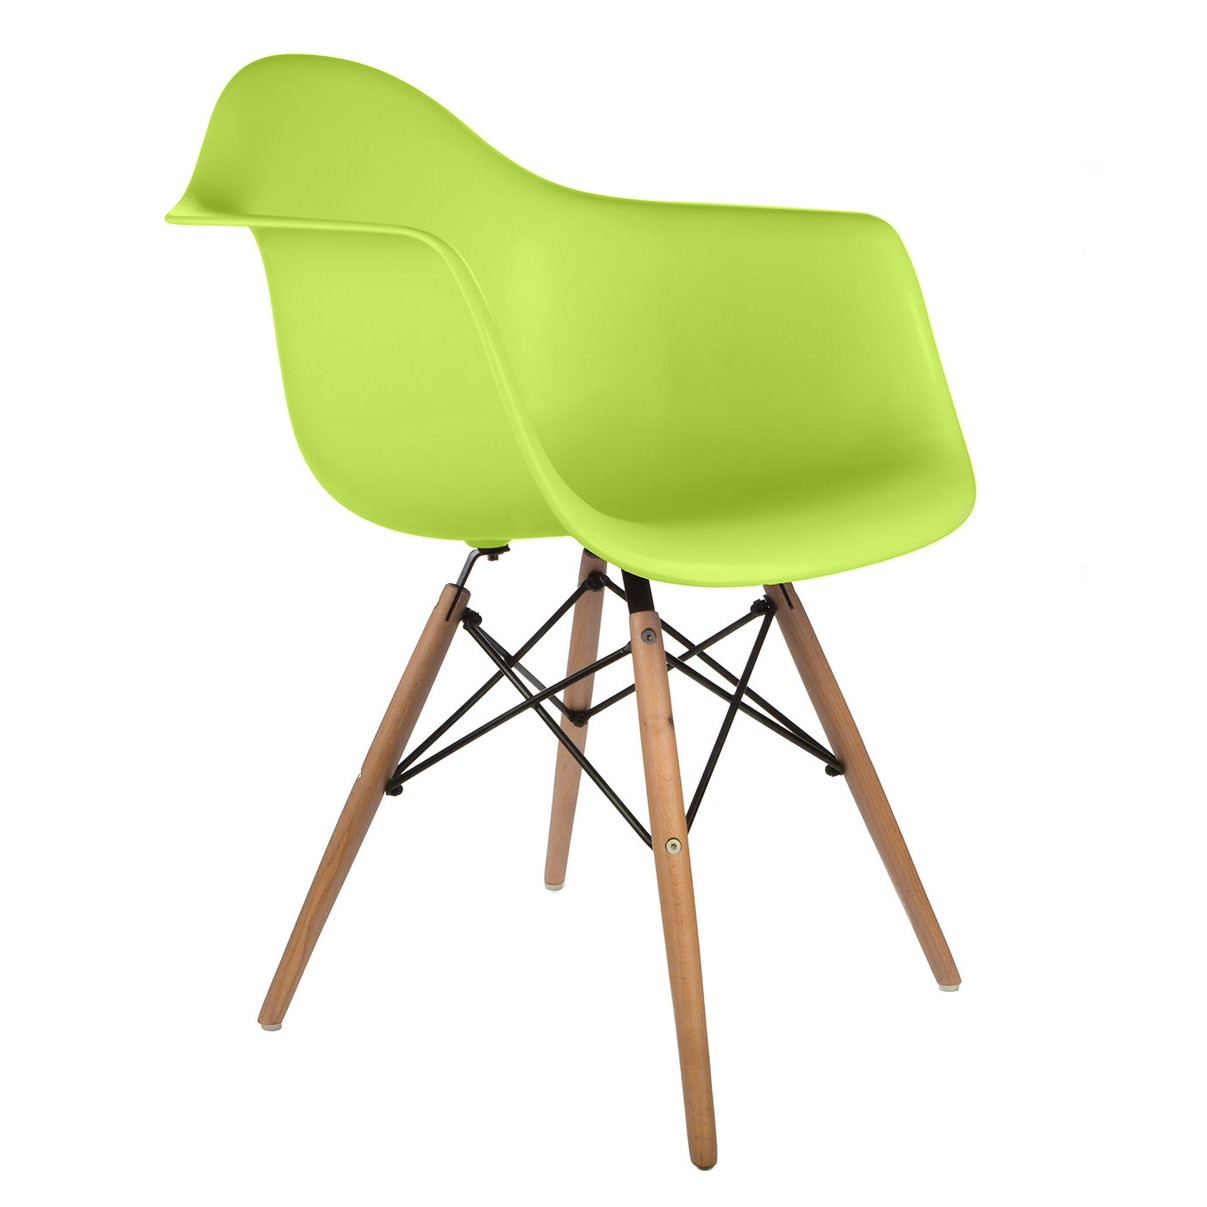 DAW Molded Lime Green Plastic Dining Armchair with Wood Eiffel LegsEames Style DAW Molded Lime Green Plastic Dining Armchair with  . Eames Dsw Chair Green. Home Design Ideas